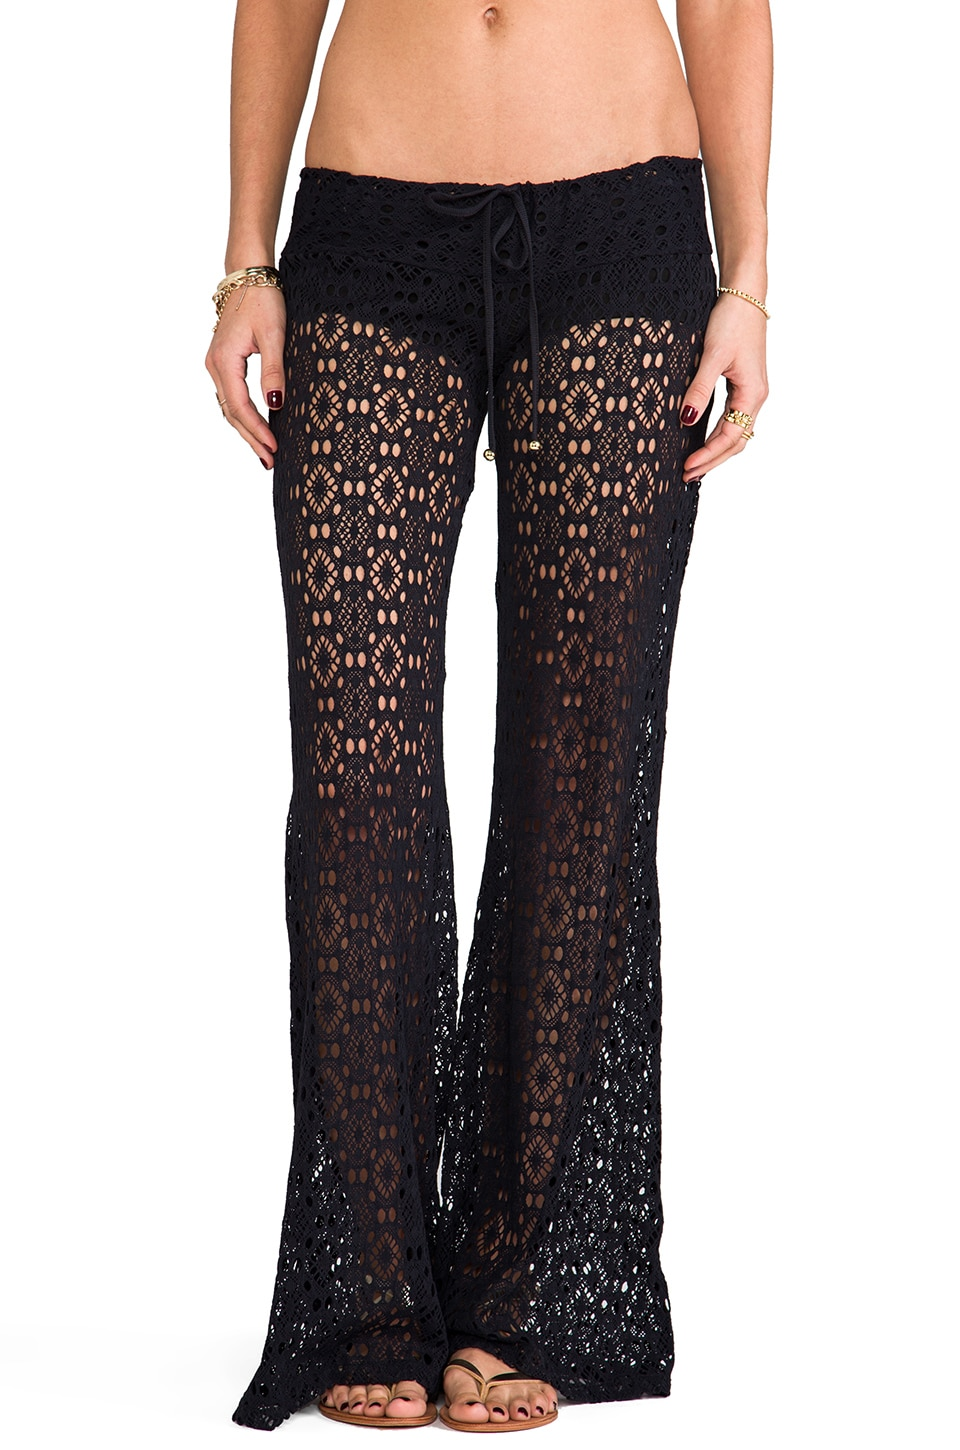 PILYQ Eyelet Lace Pants in Midnight Gold